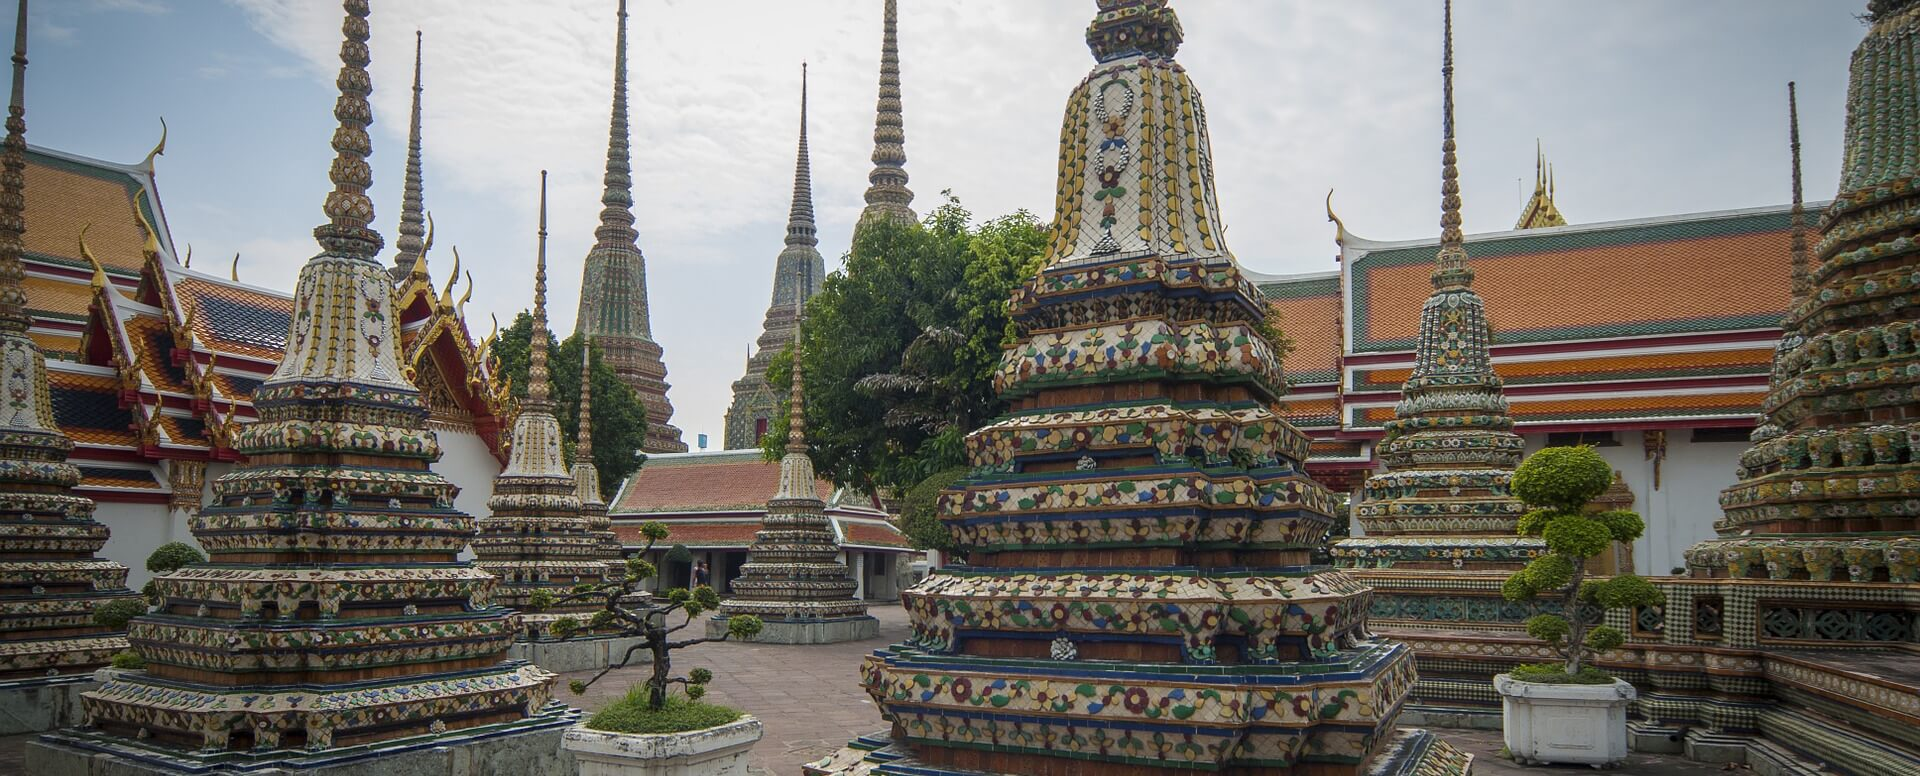 Visiting the Buddhist Temples - Thailand